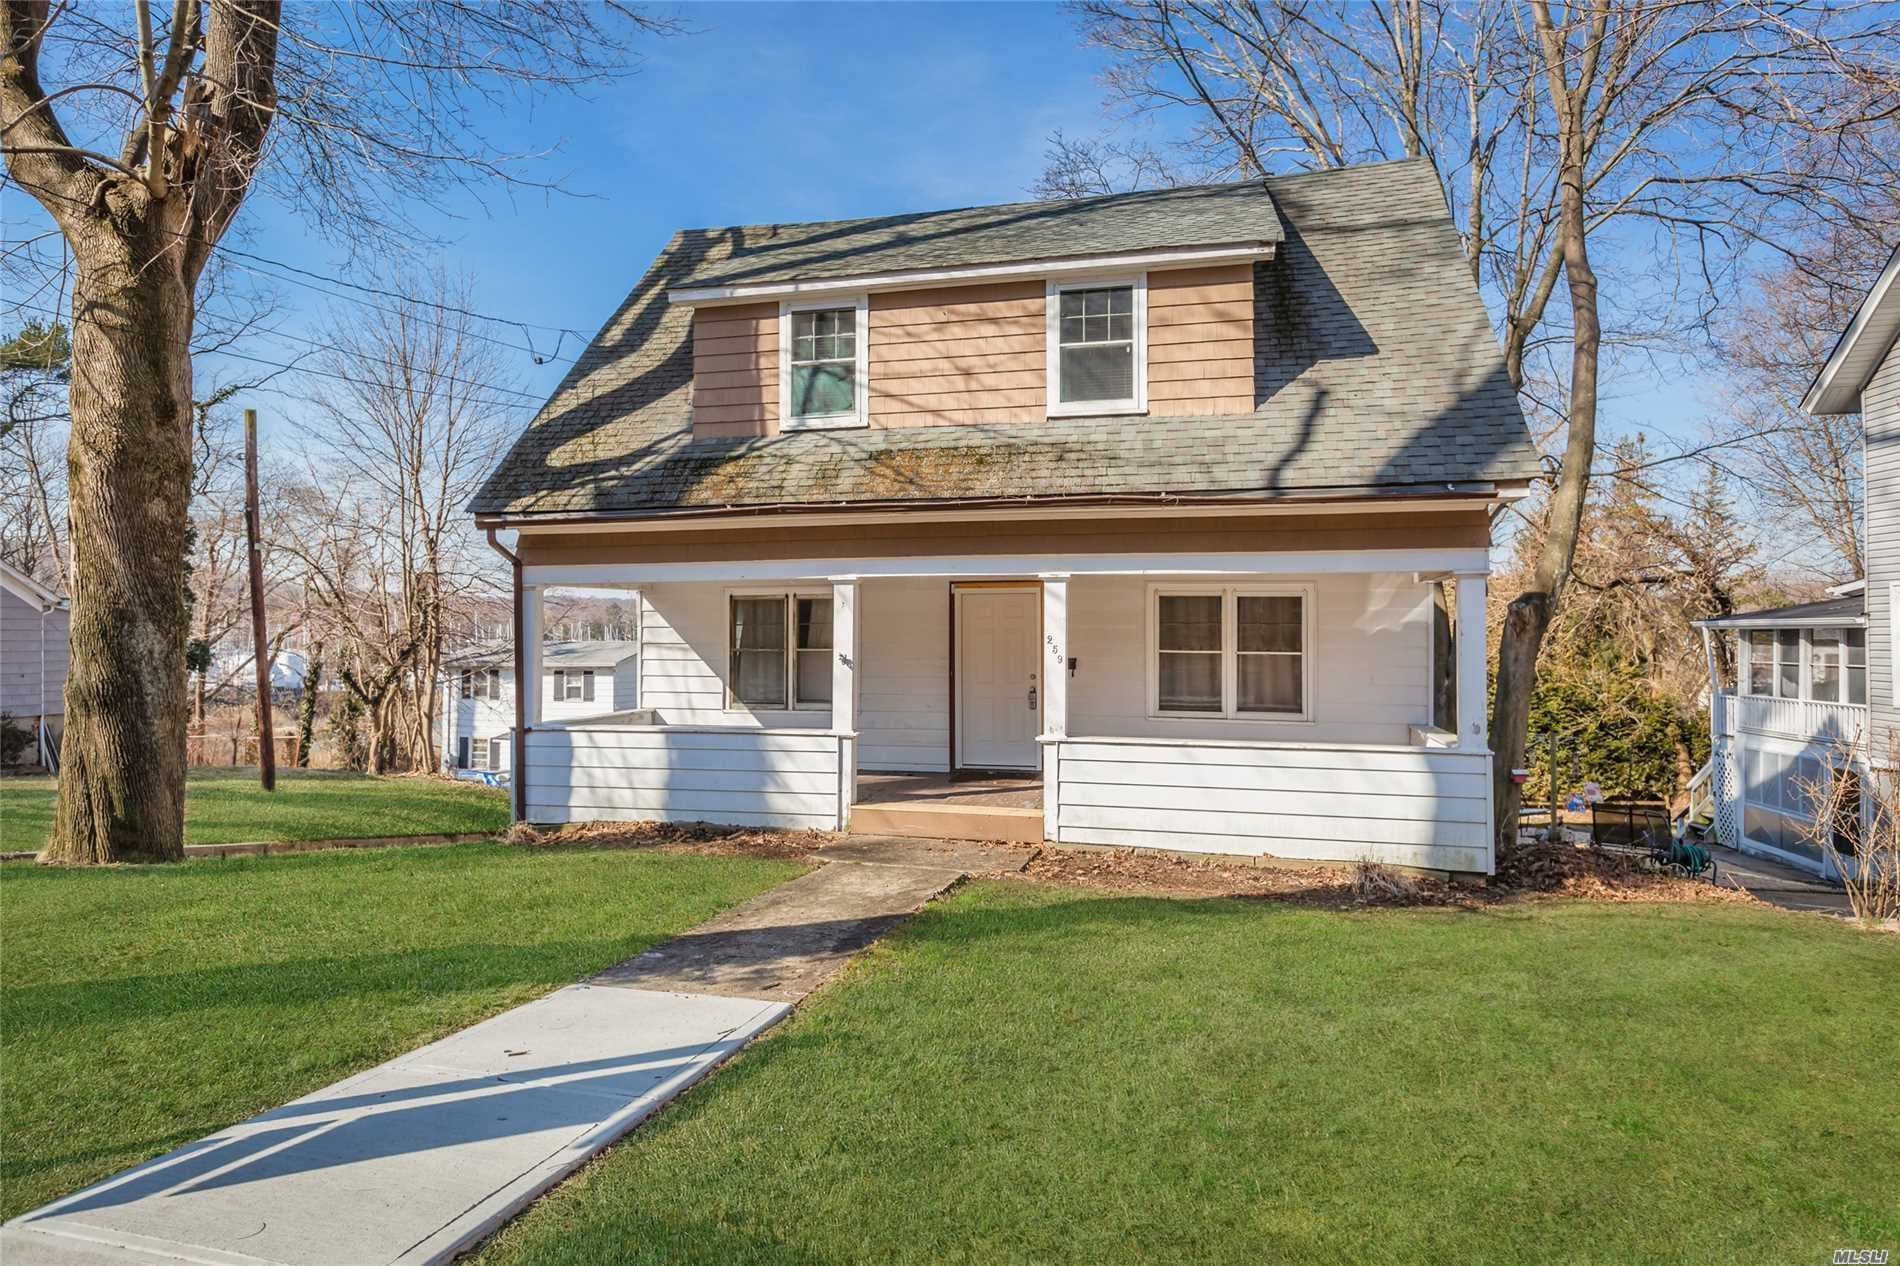 259 woodbine Ave - Northport, New York